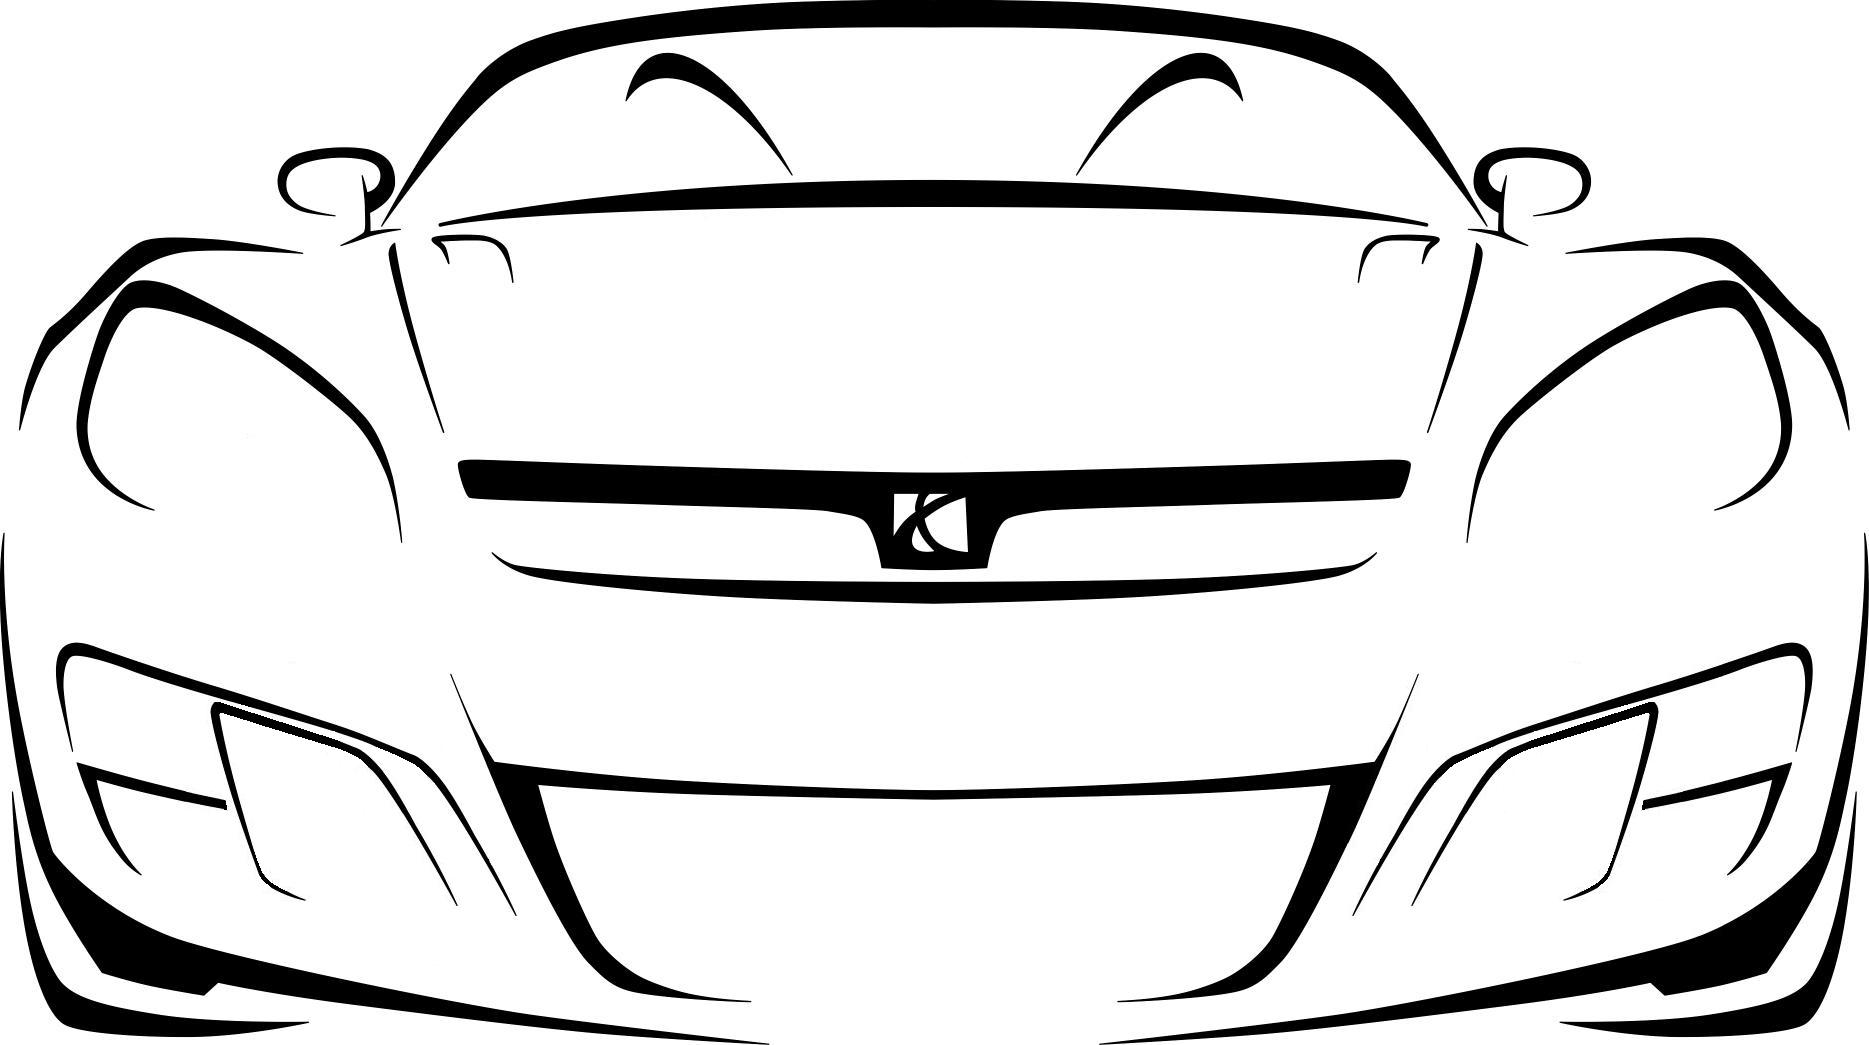 Free Race Car Outline Download Free Clip Art Free Clip